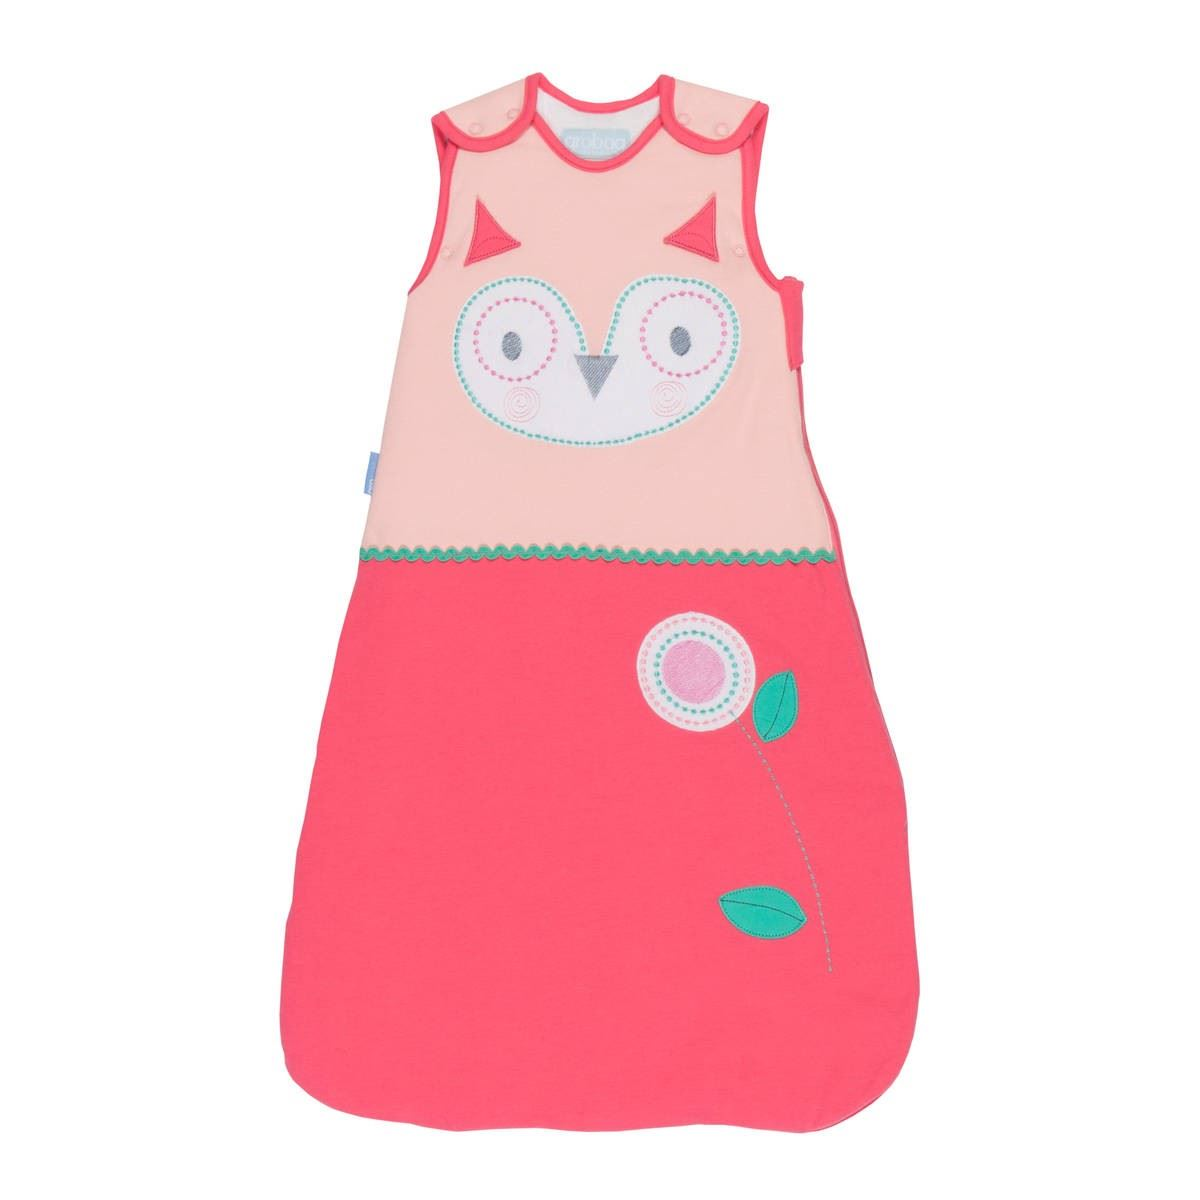 the gro company what a hoot baby grobag sleeping bag sack cotton 18 36m 1 0 tog ebay. Black Bedroom Furniture Sets. Home Design Ideas